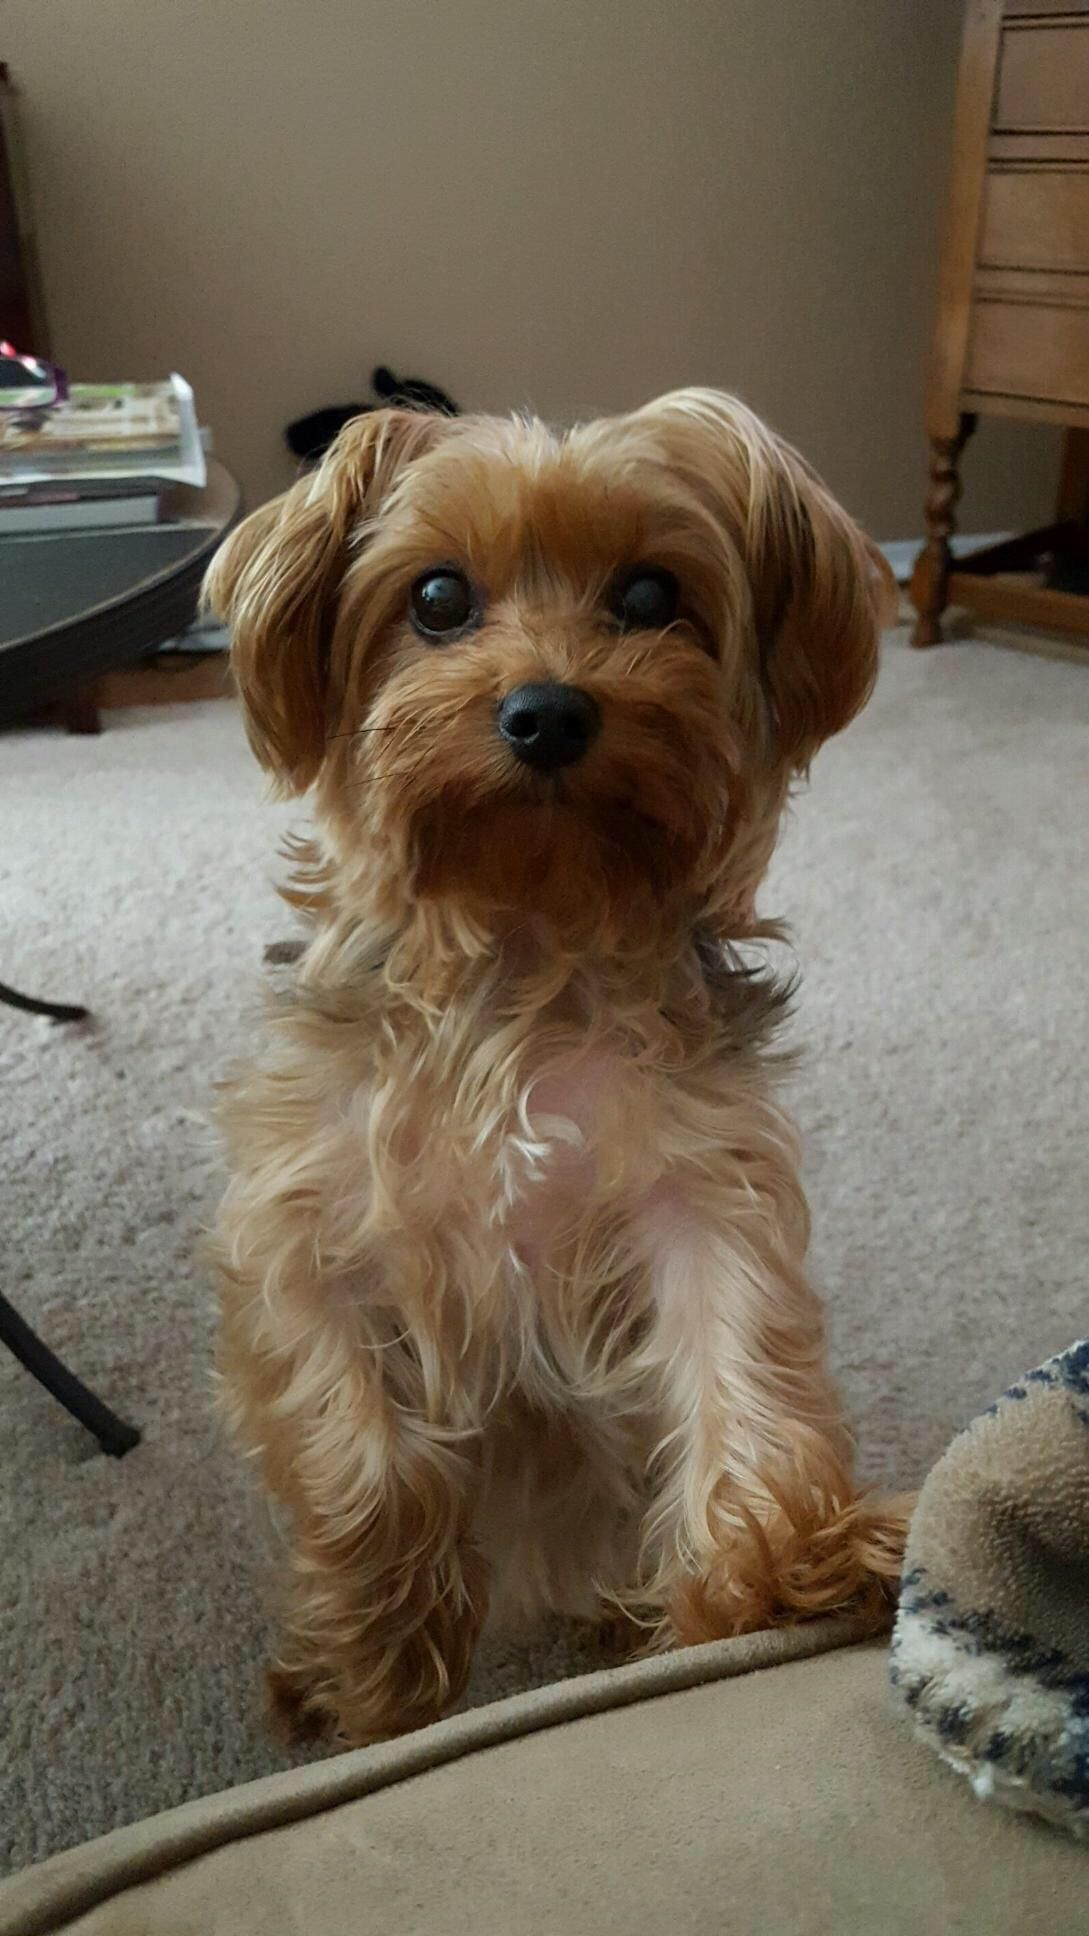 The cutest yorkie ever is my yorkie and his name is midget aww